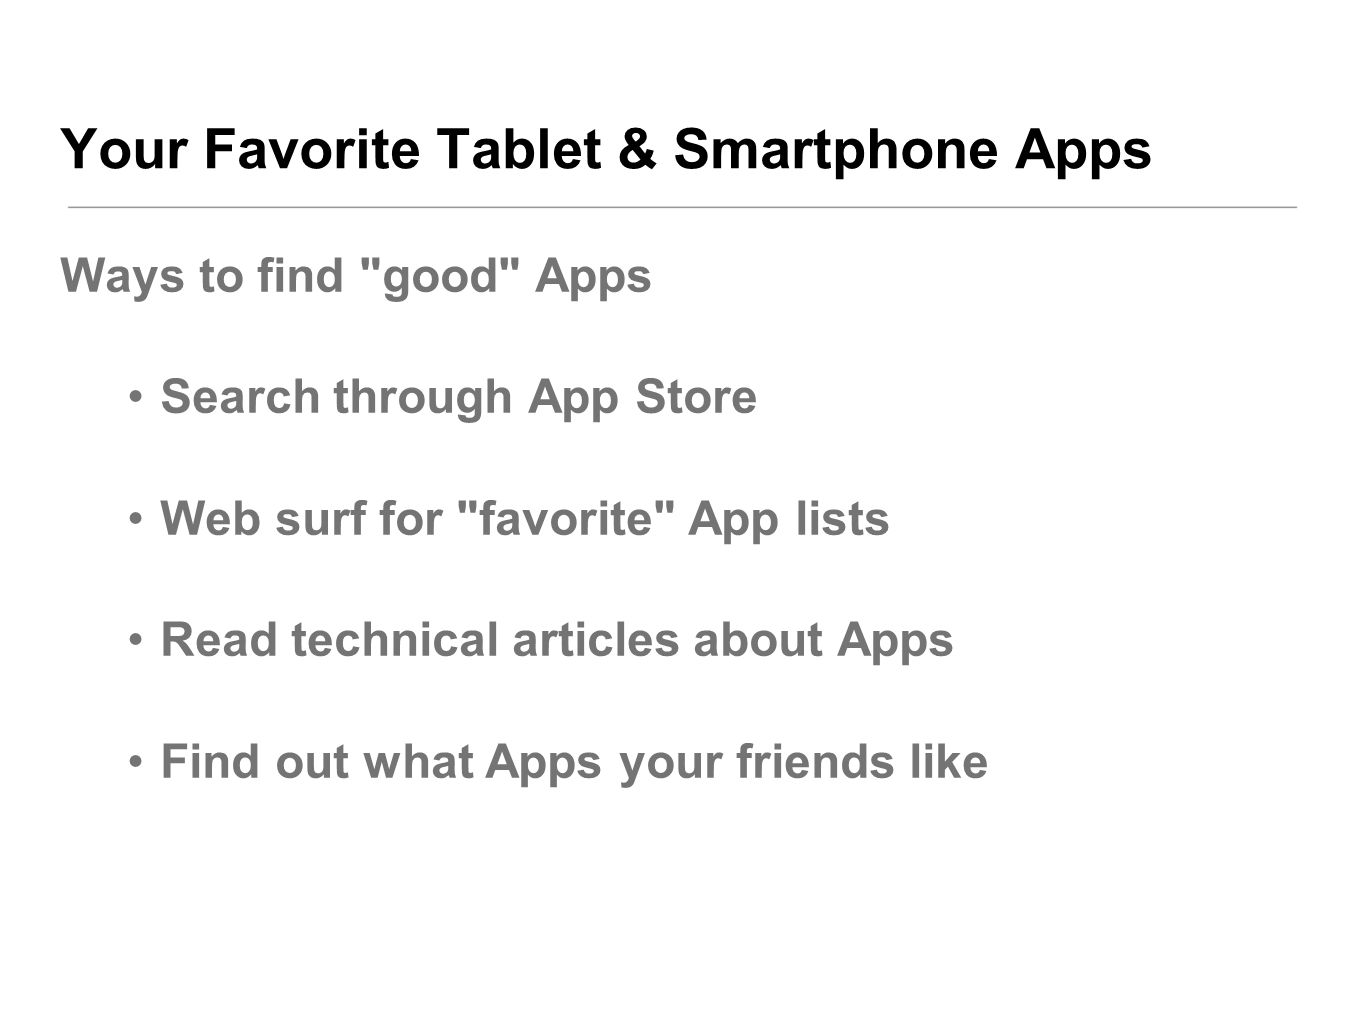 Your Favorite Tablet & Smartphone Apps Ways to find good Apps Search through App Store Web surf for favorite App lists Read technical articles about Apps Find out what Apps your friends like